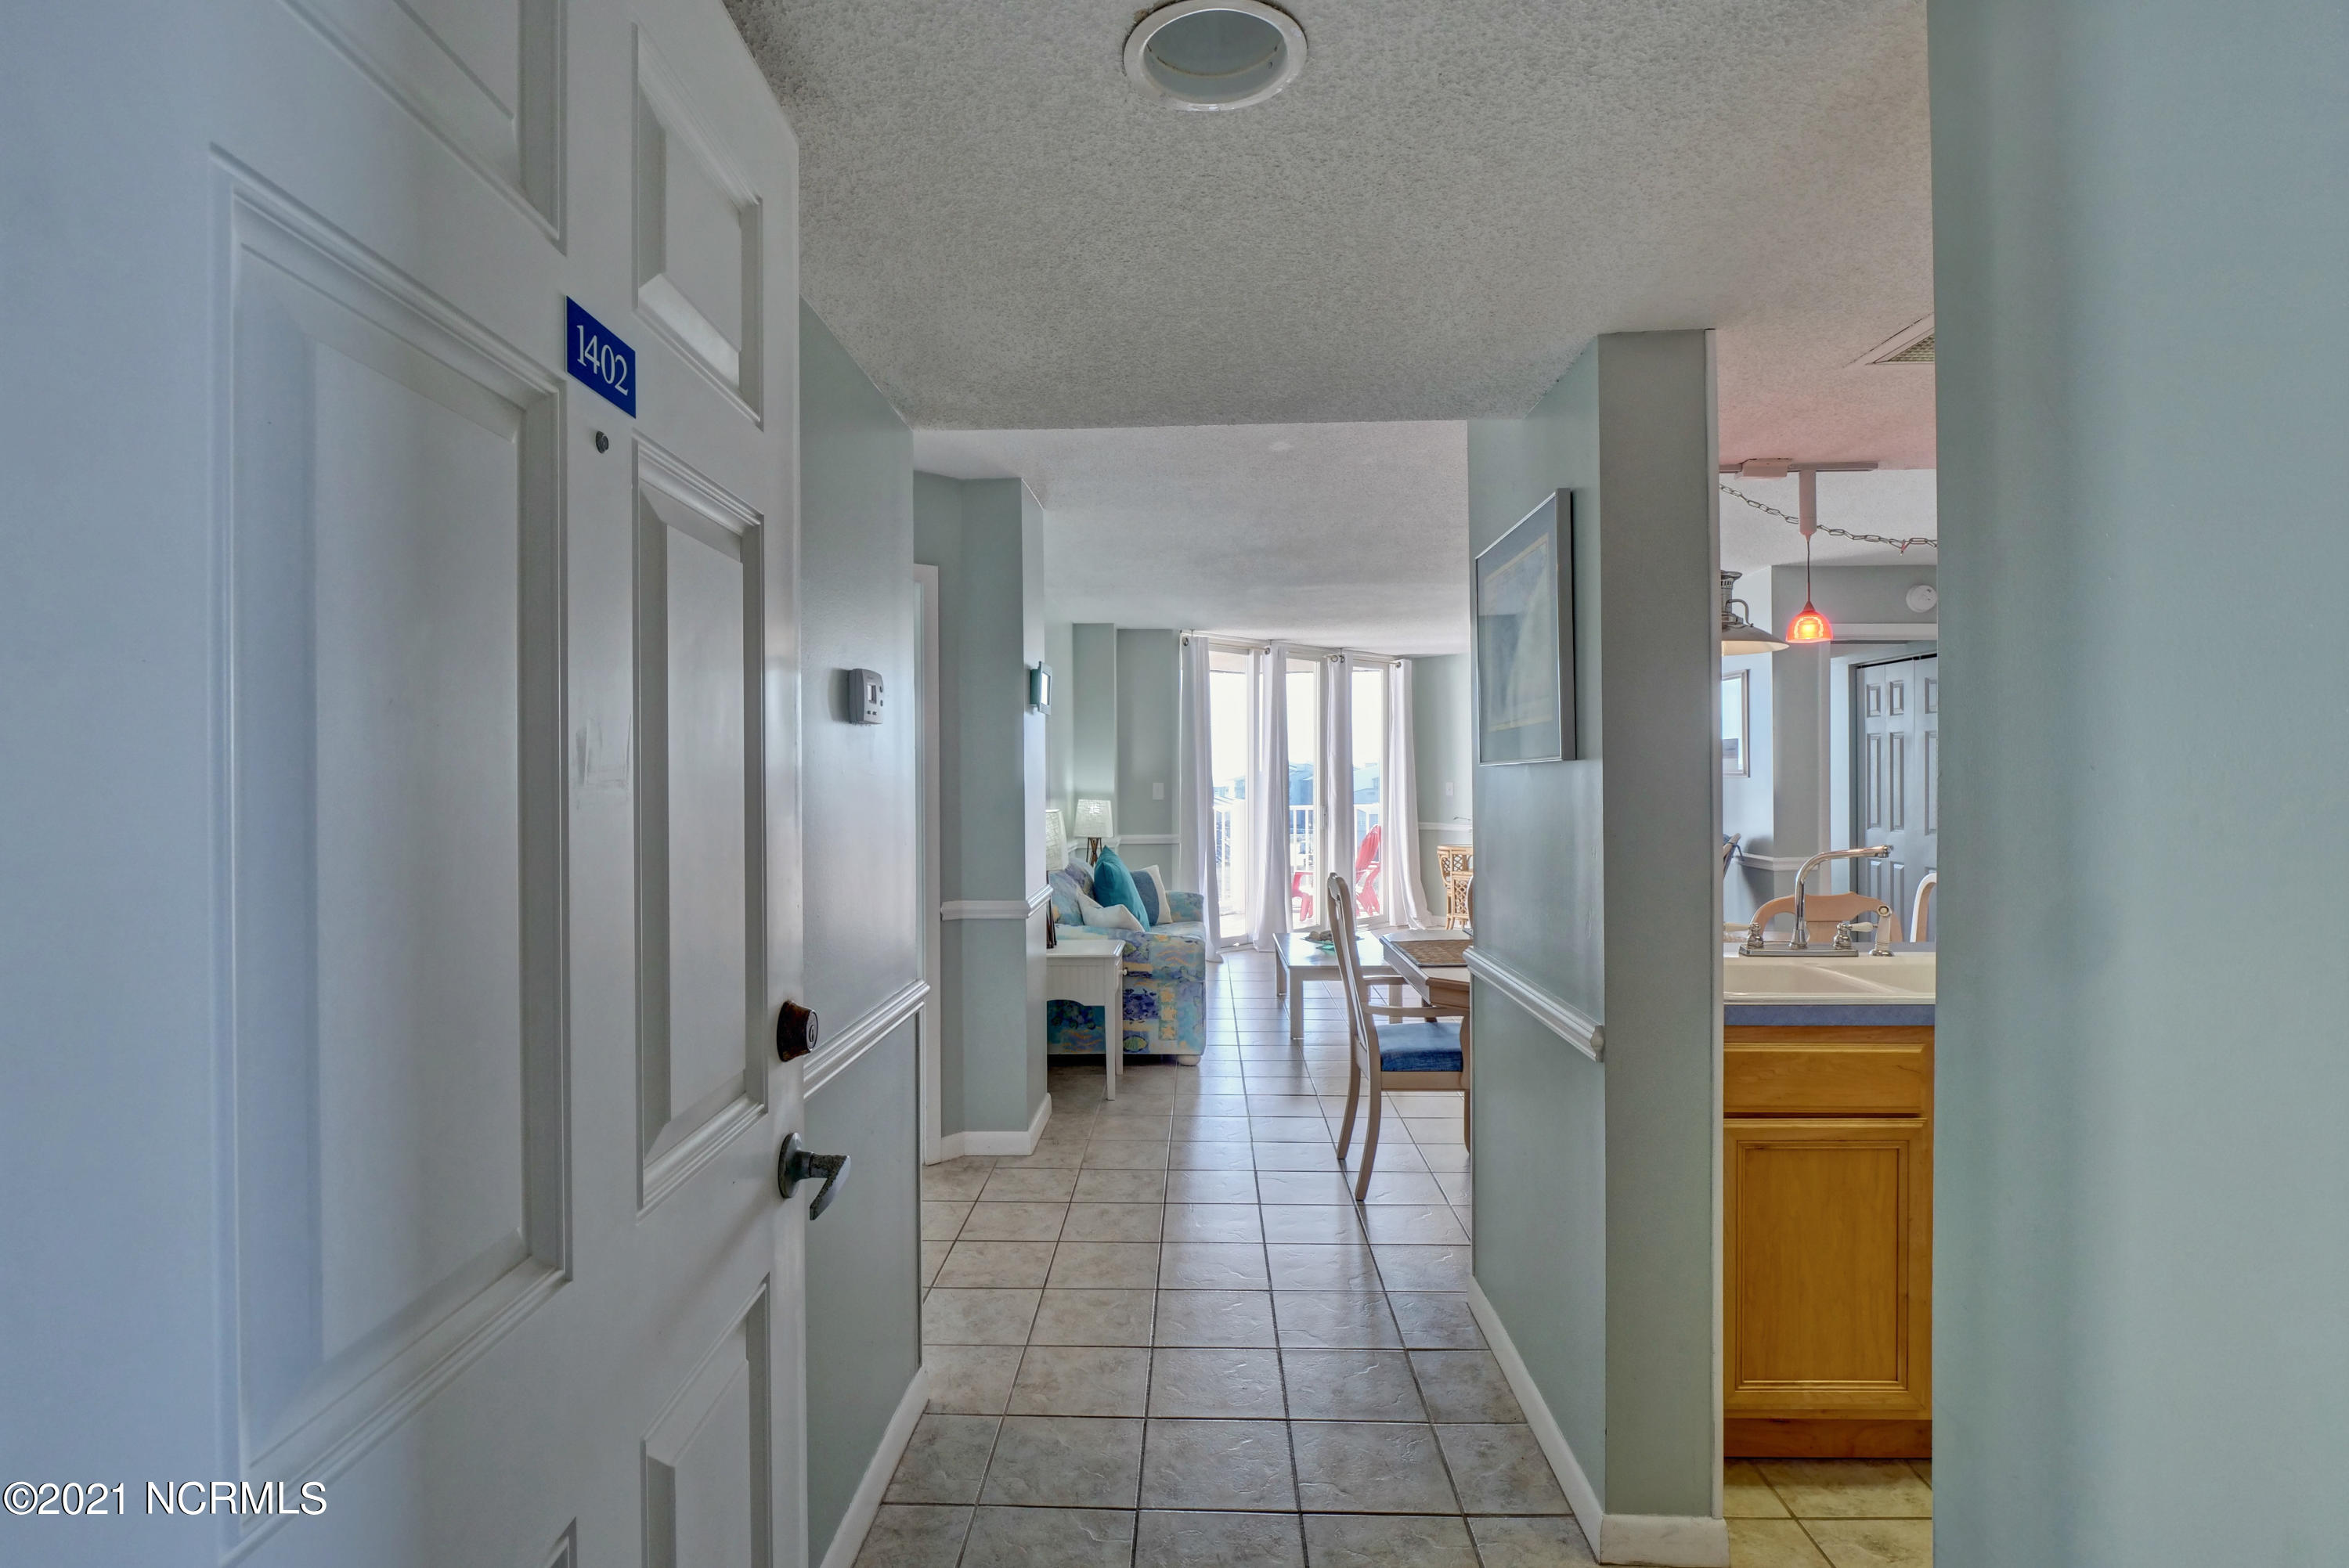 2000 New River Inlet Road, North Topsail Beach, North Carolina 28460, 2 Bedrooms Bedrooms, 3 Rooms Rooms,2 BathroomsBathrooms,Condominium,For sale,New River Inlet,100264477